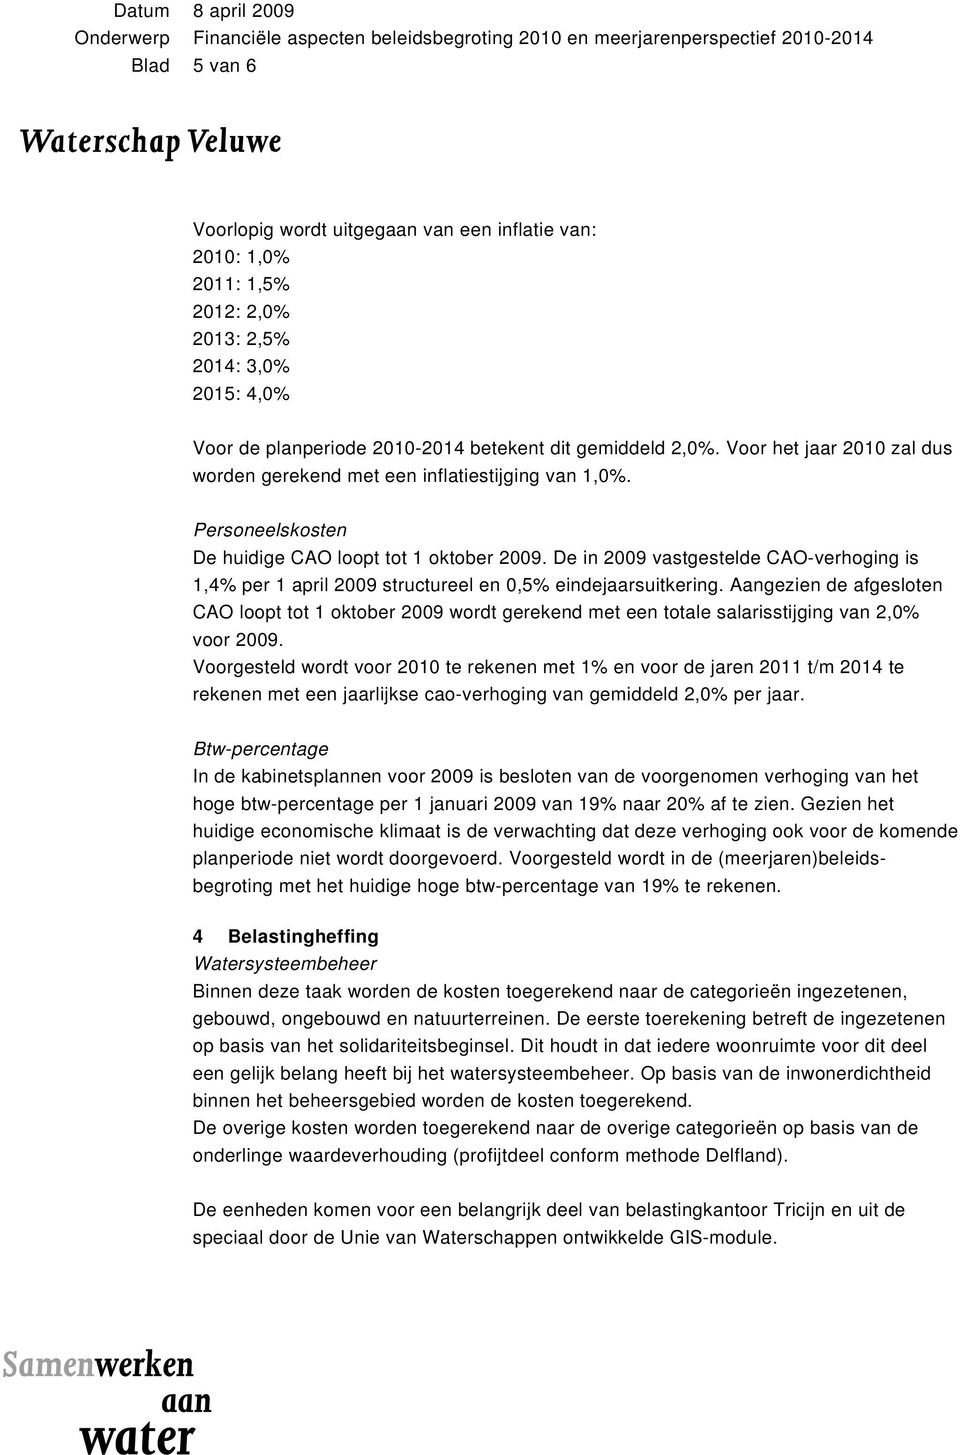 De in 2009 vastgestelde CAO-verhoging is 1,4% per 1 april 2009 structureel en 0,5% eindejaarsuitkering.